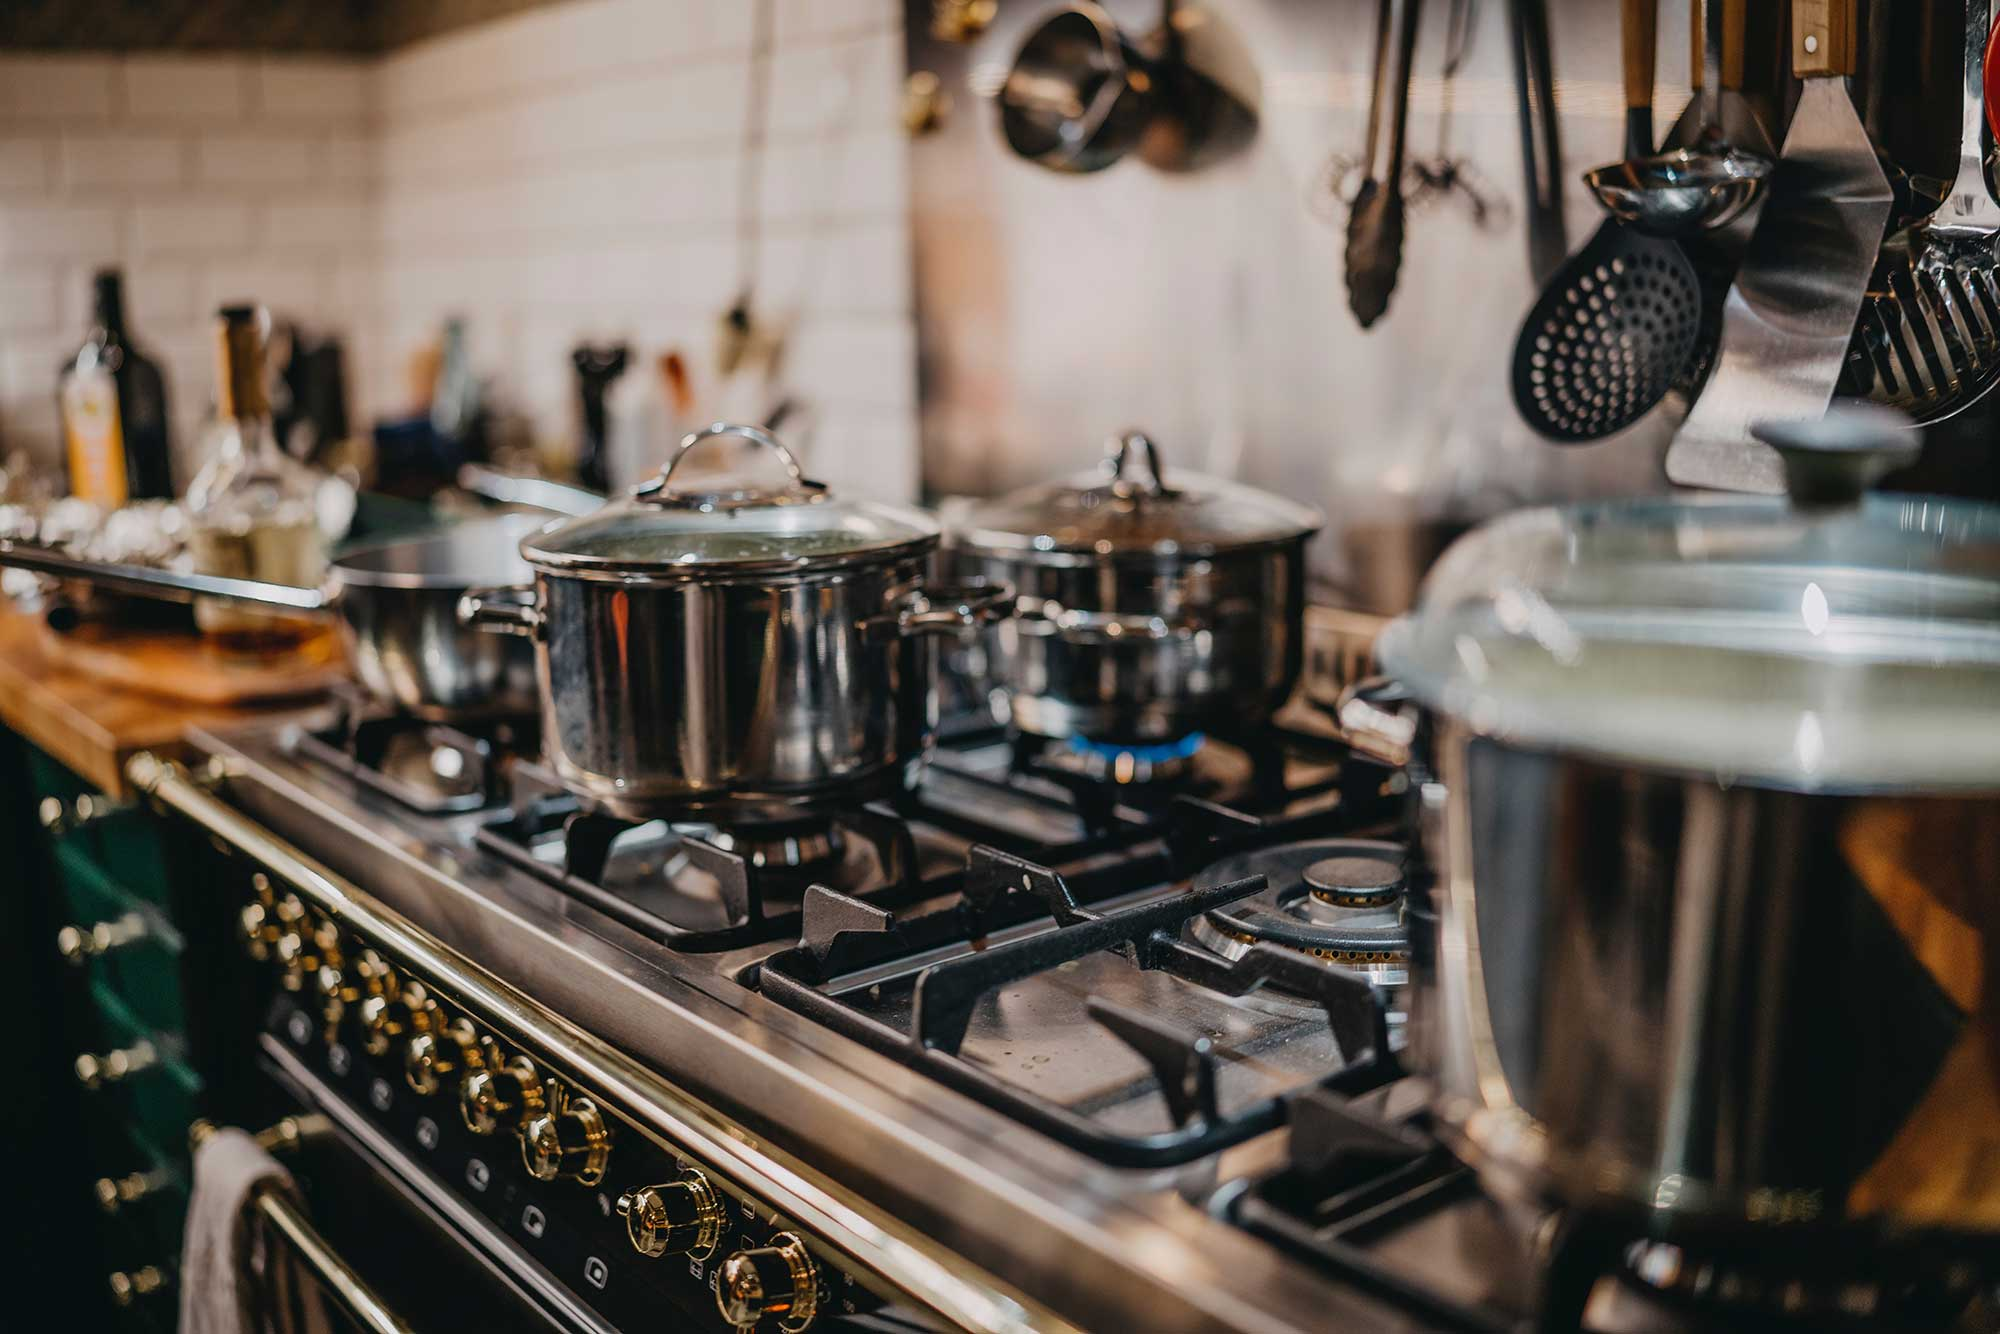 Pots on a stovetop